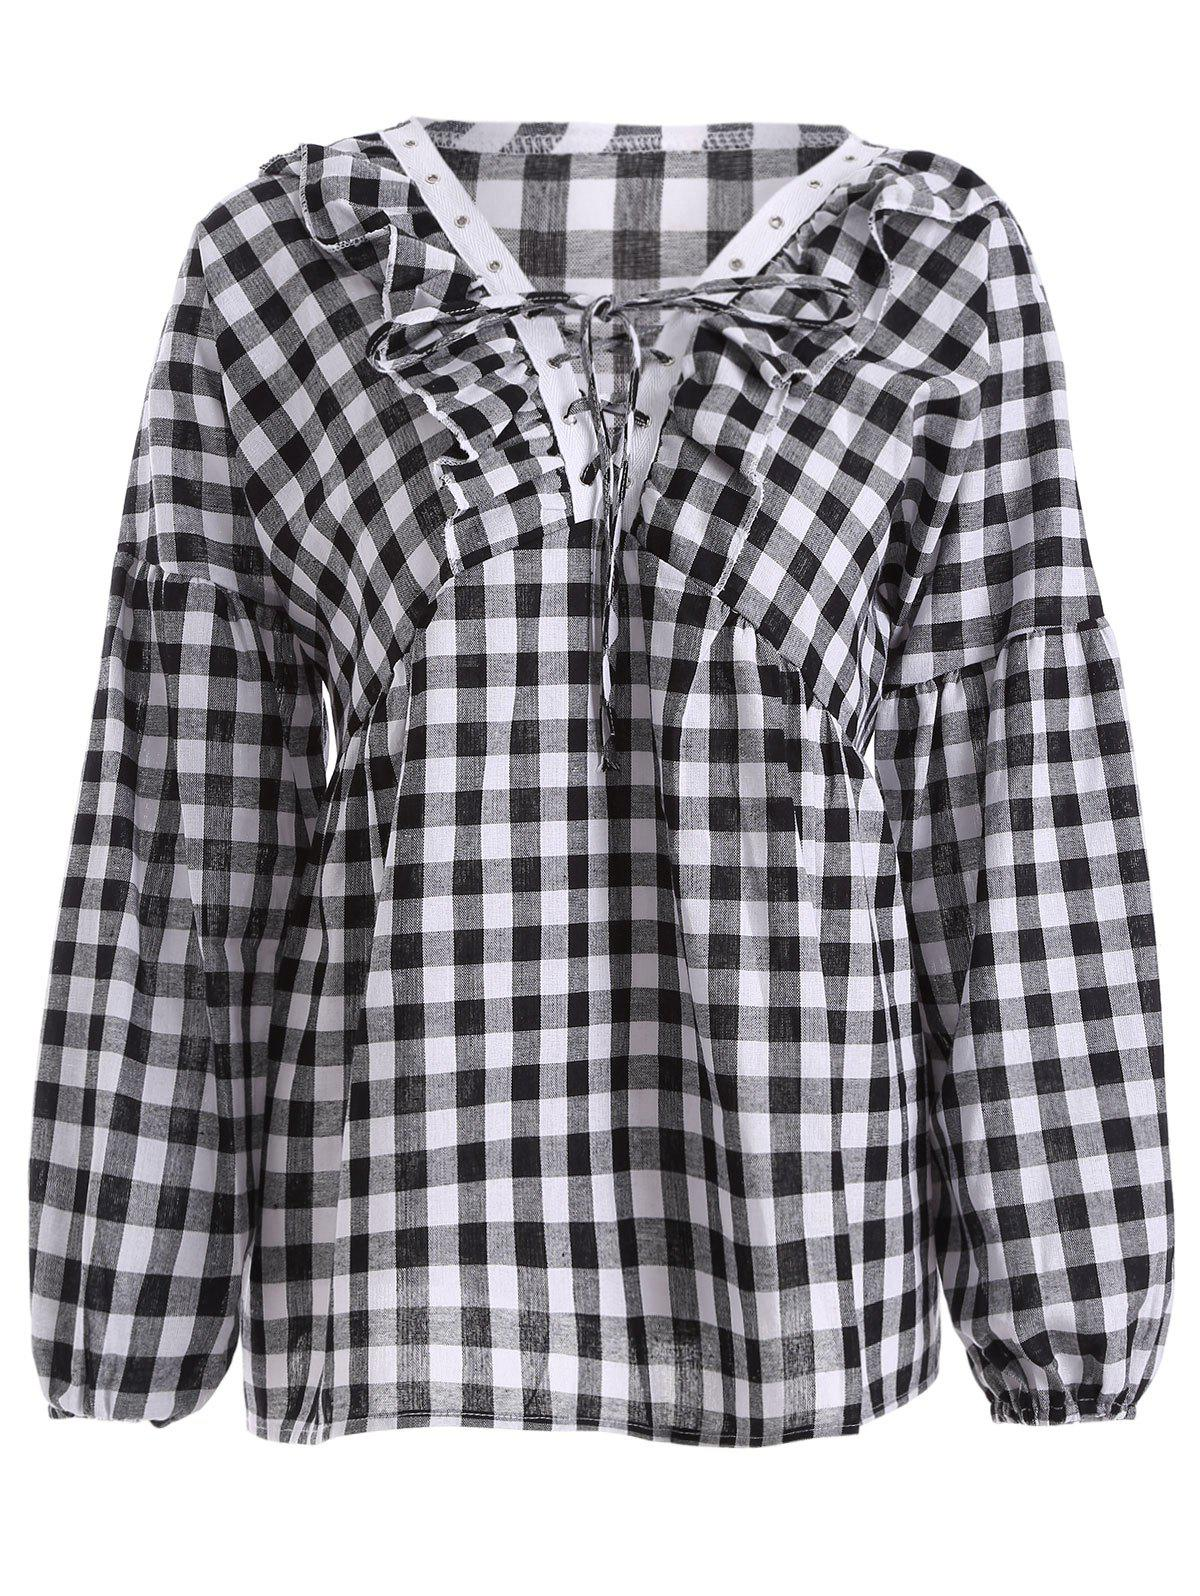 Puff Sleeve Plaid Lace-Up Blouse - Carré 3XL